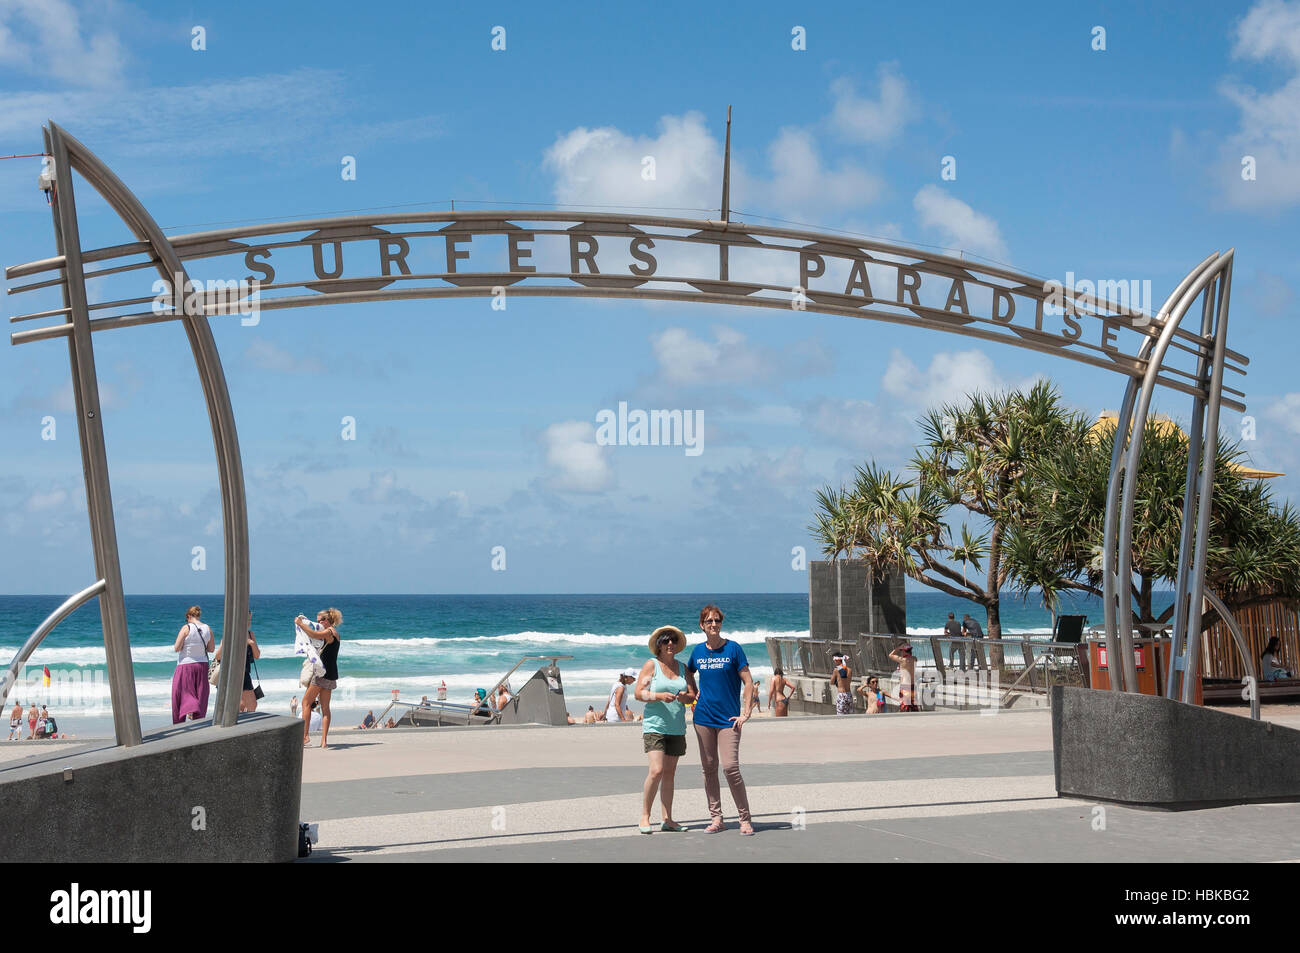 Surfers Paradise Sign Australia High Resolution Stock Photography And Images Alamy